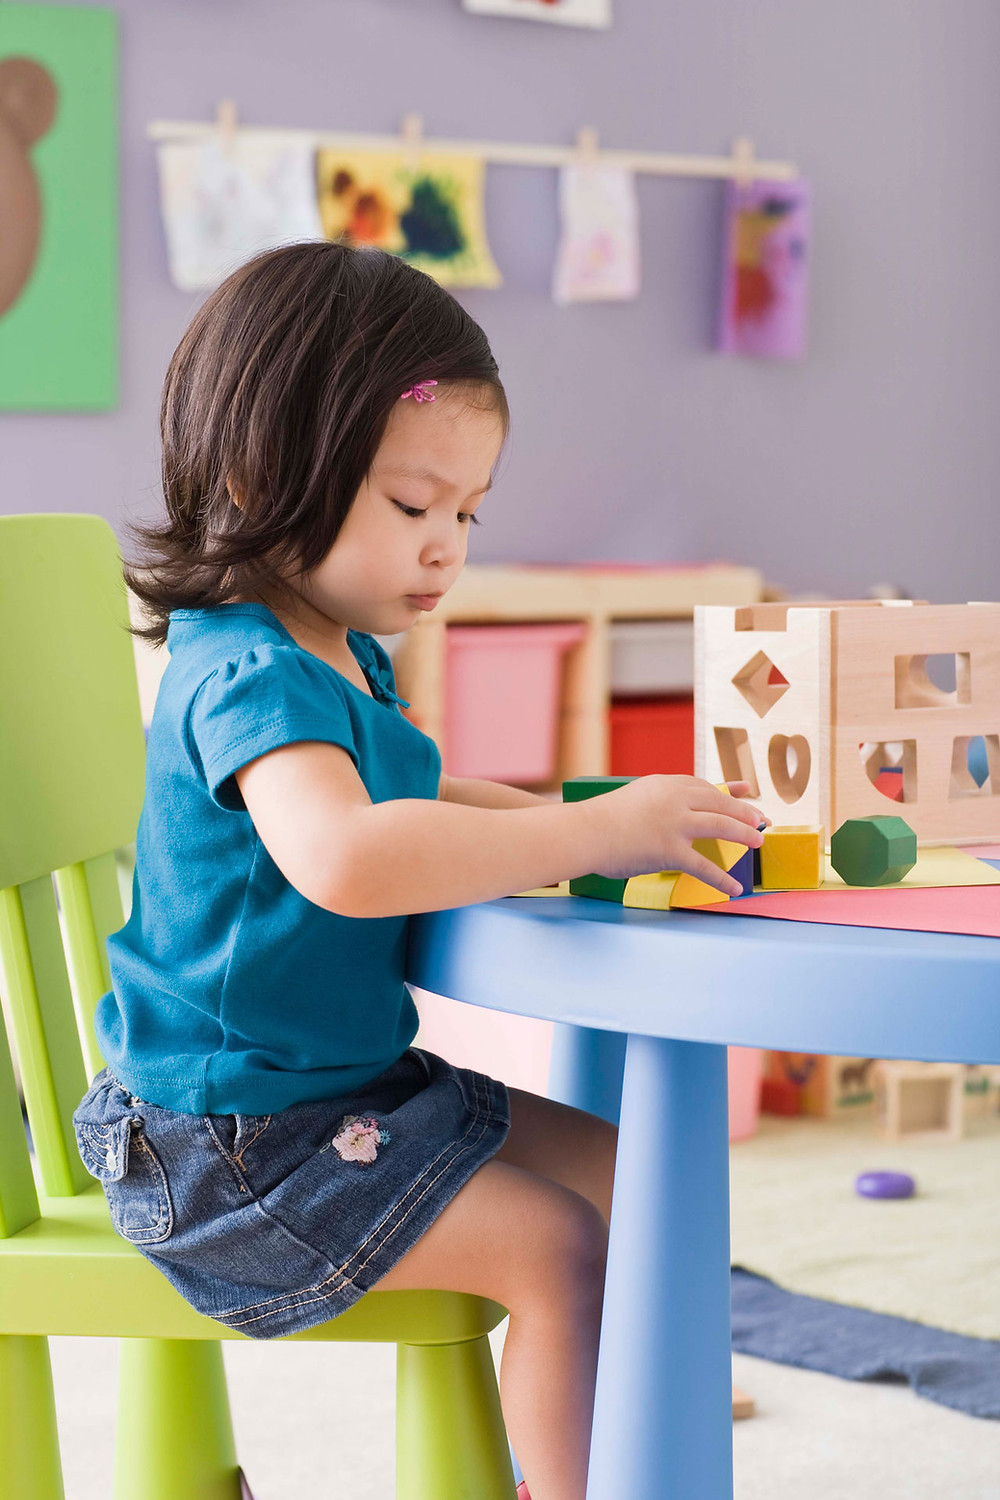 Child at nursery table, concentrating on playing alone with shapes.